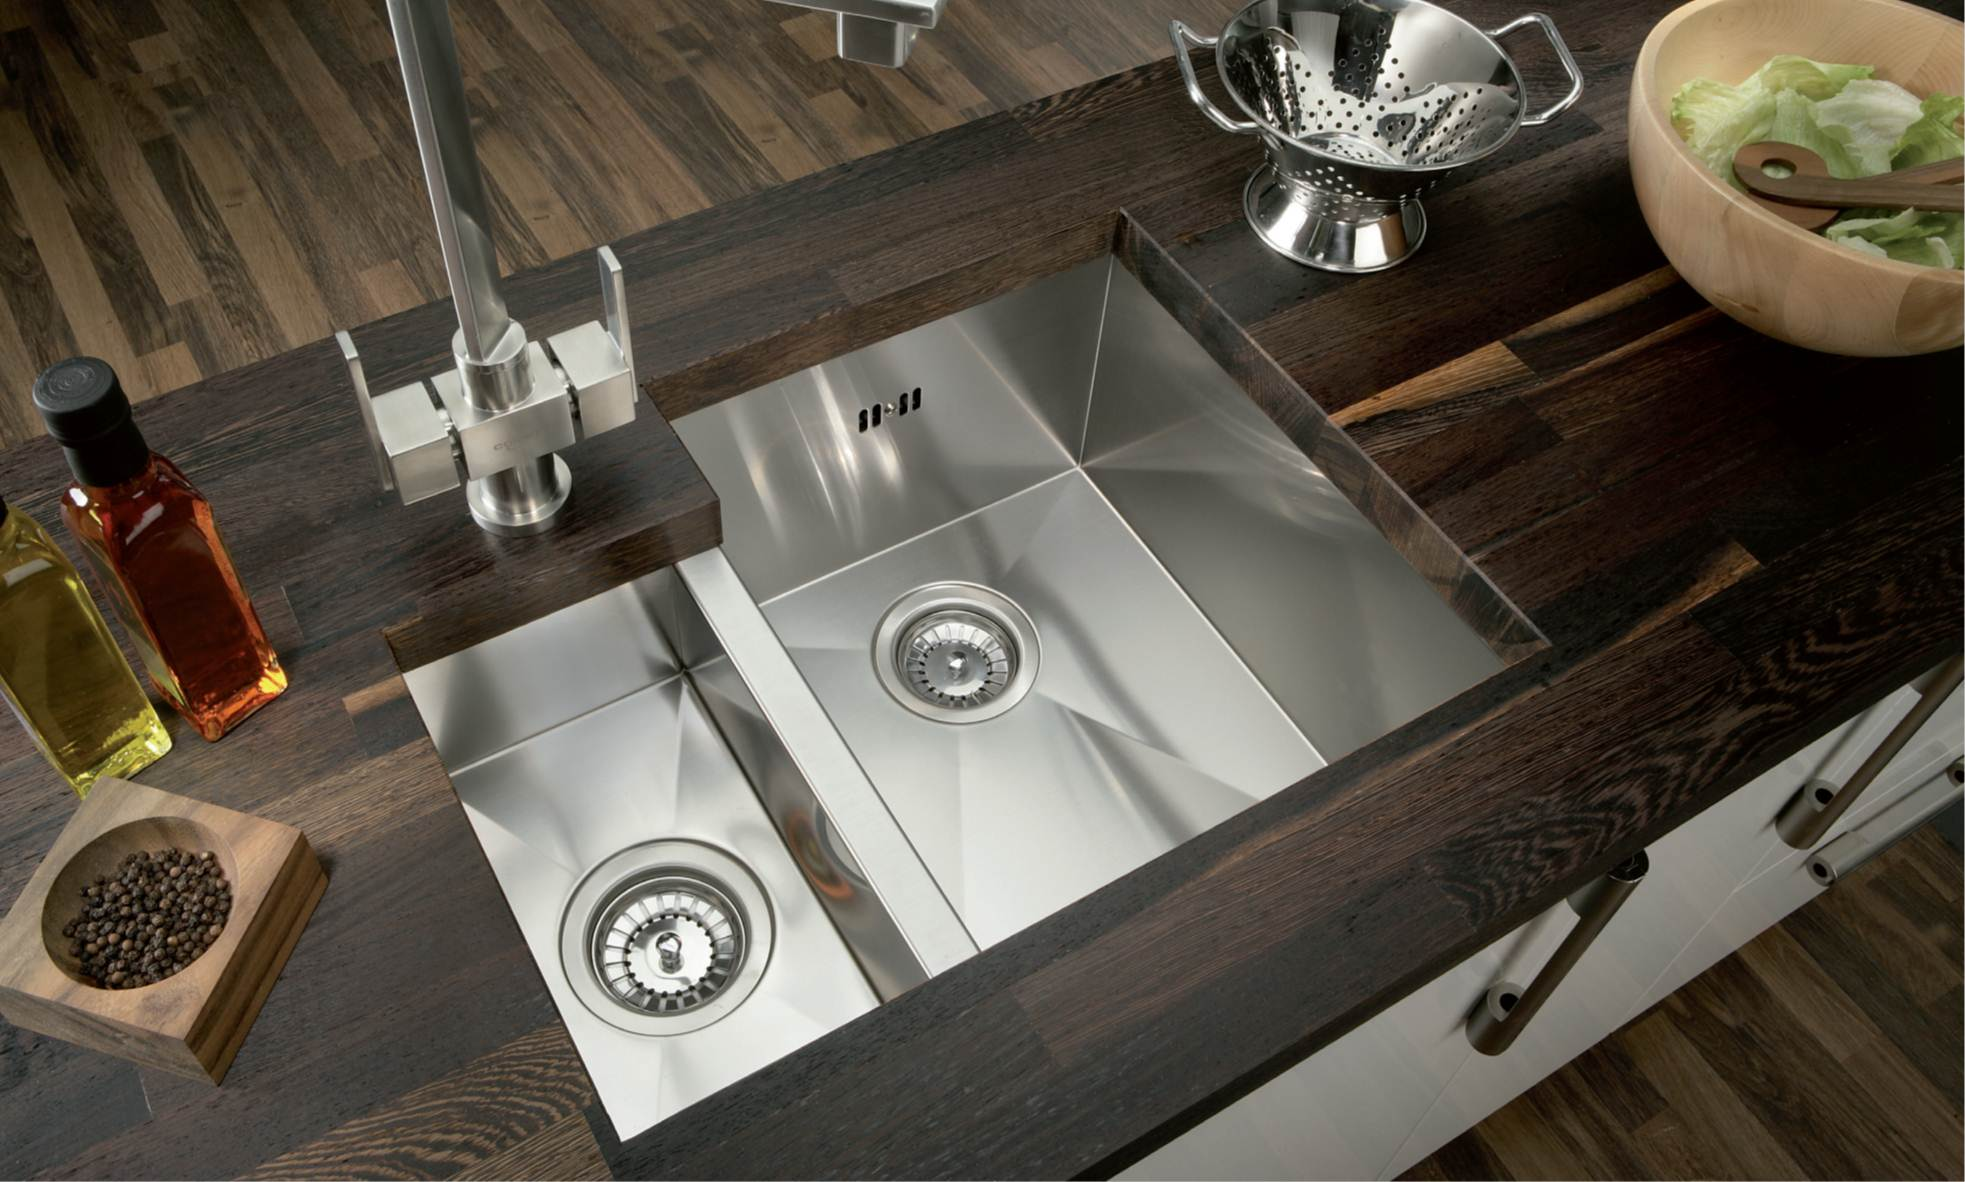 d image kitchen luxury stainless best for furniture accessories and killer sink of shaped steel sinks undermount